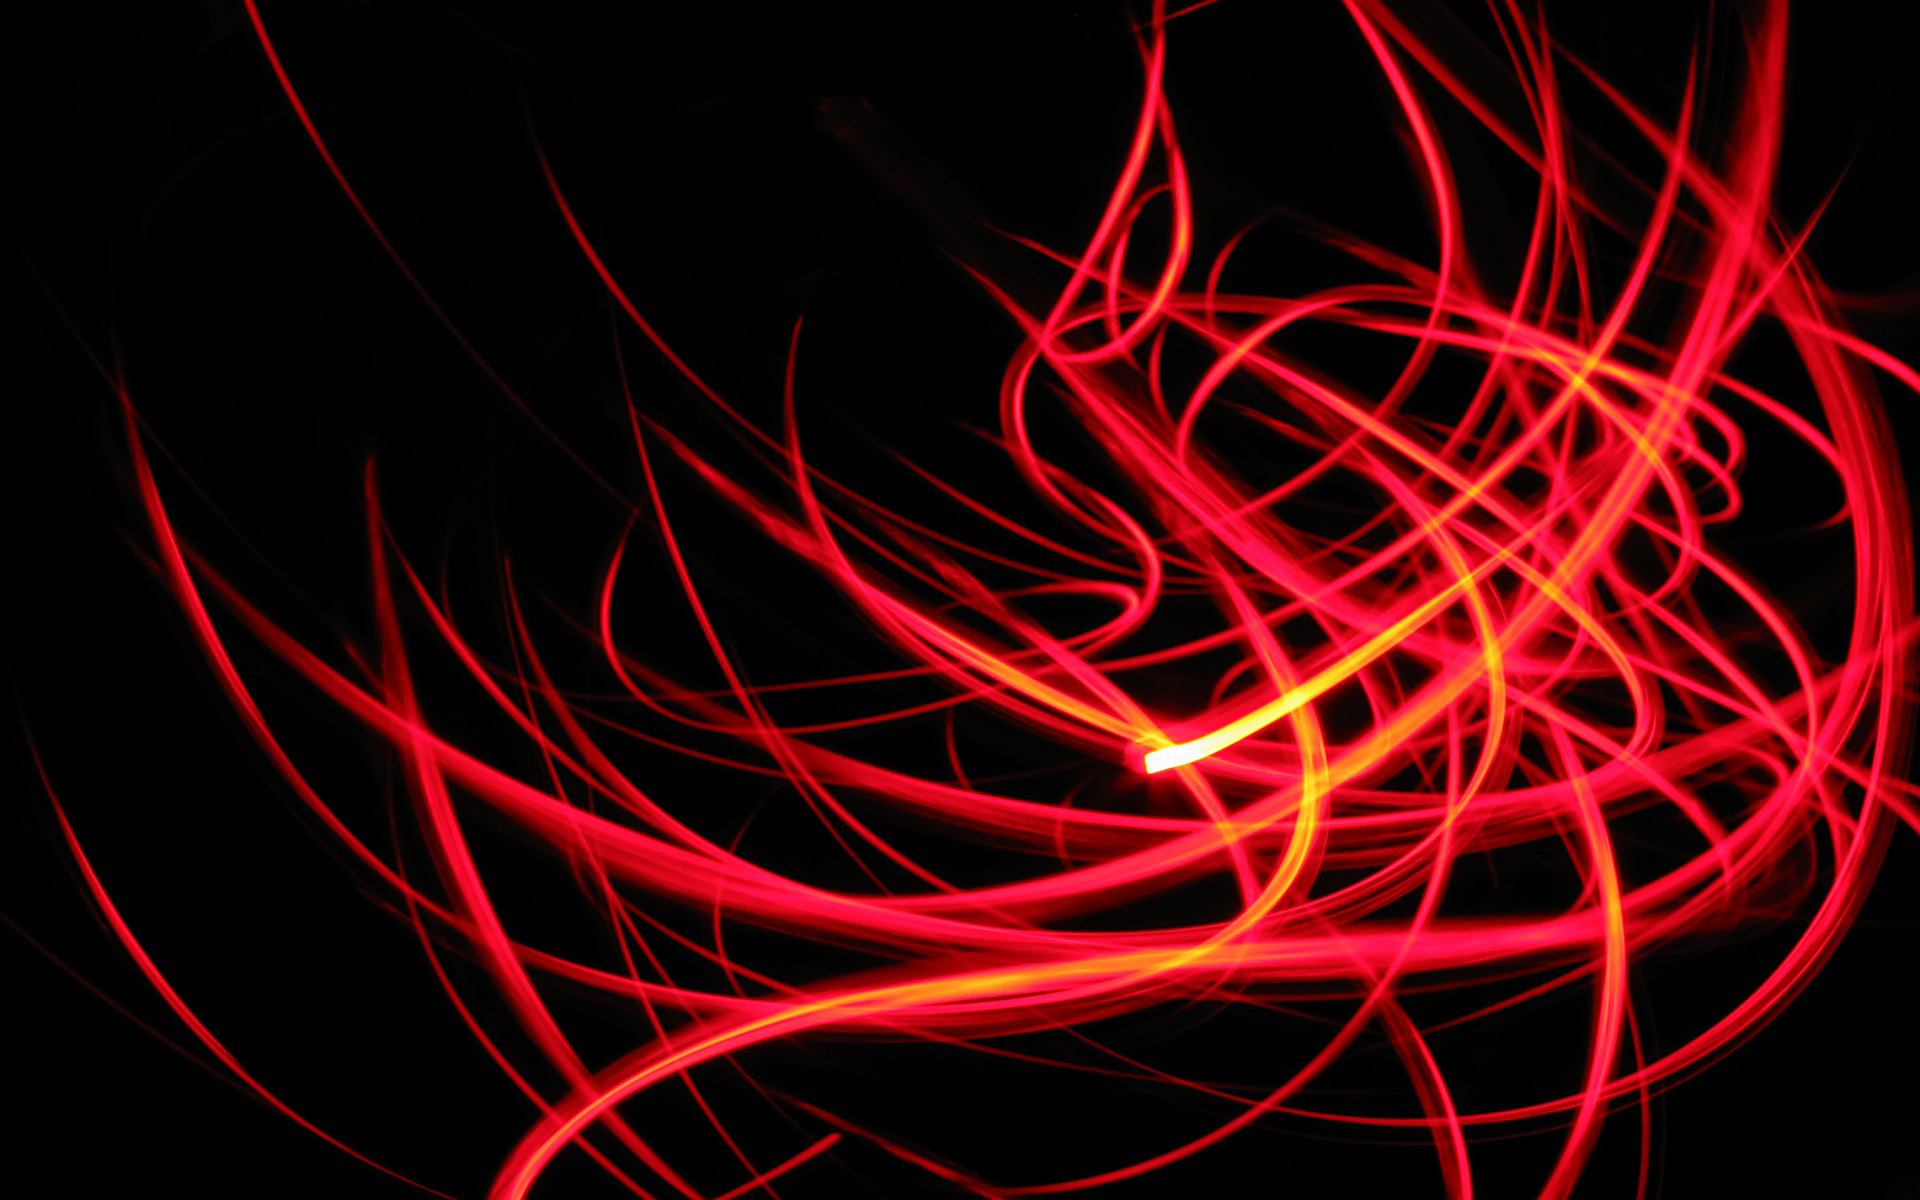 Free Download 3d Wallpaper For Android Tablet Black And Red Backgrounds Pixelstalk Net